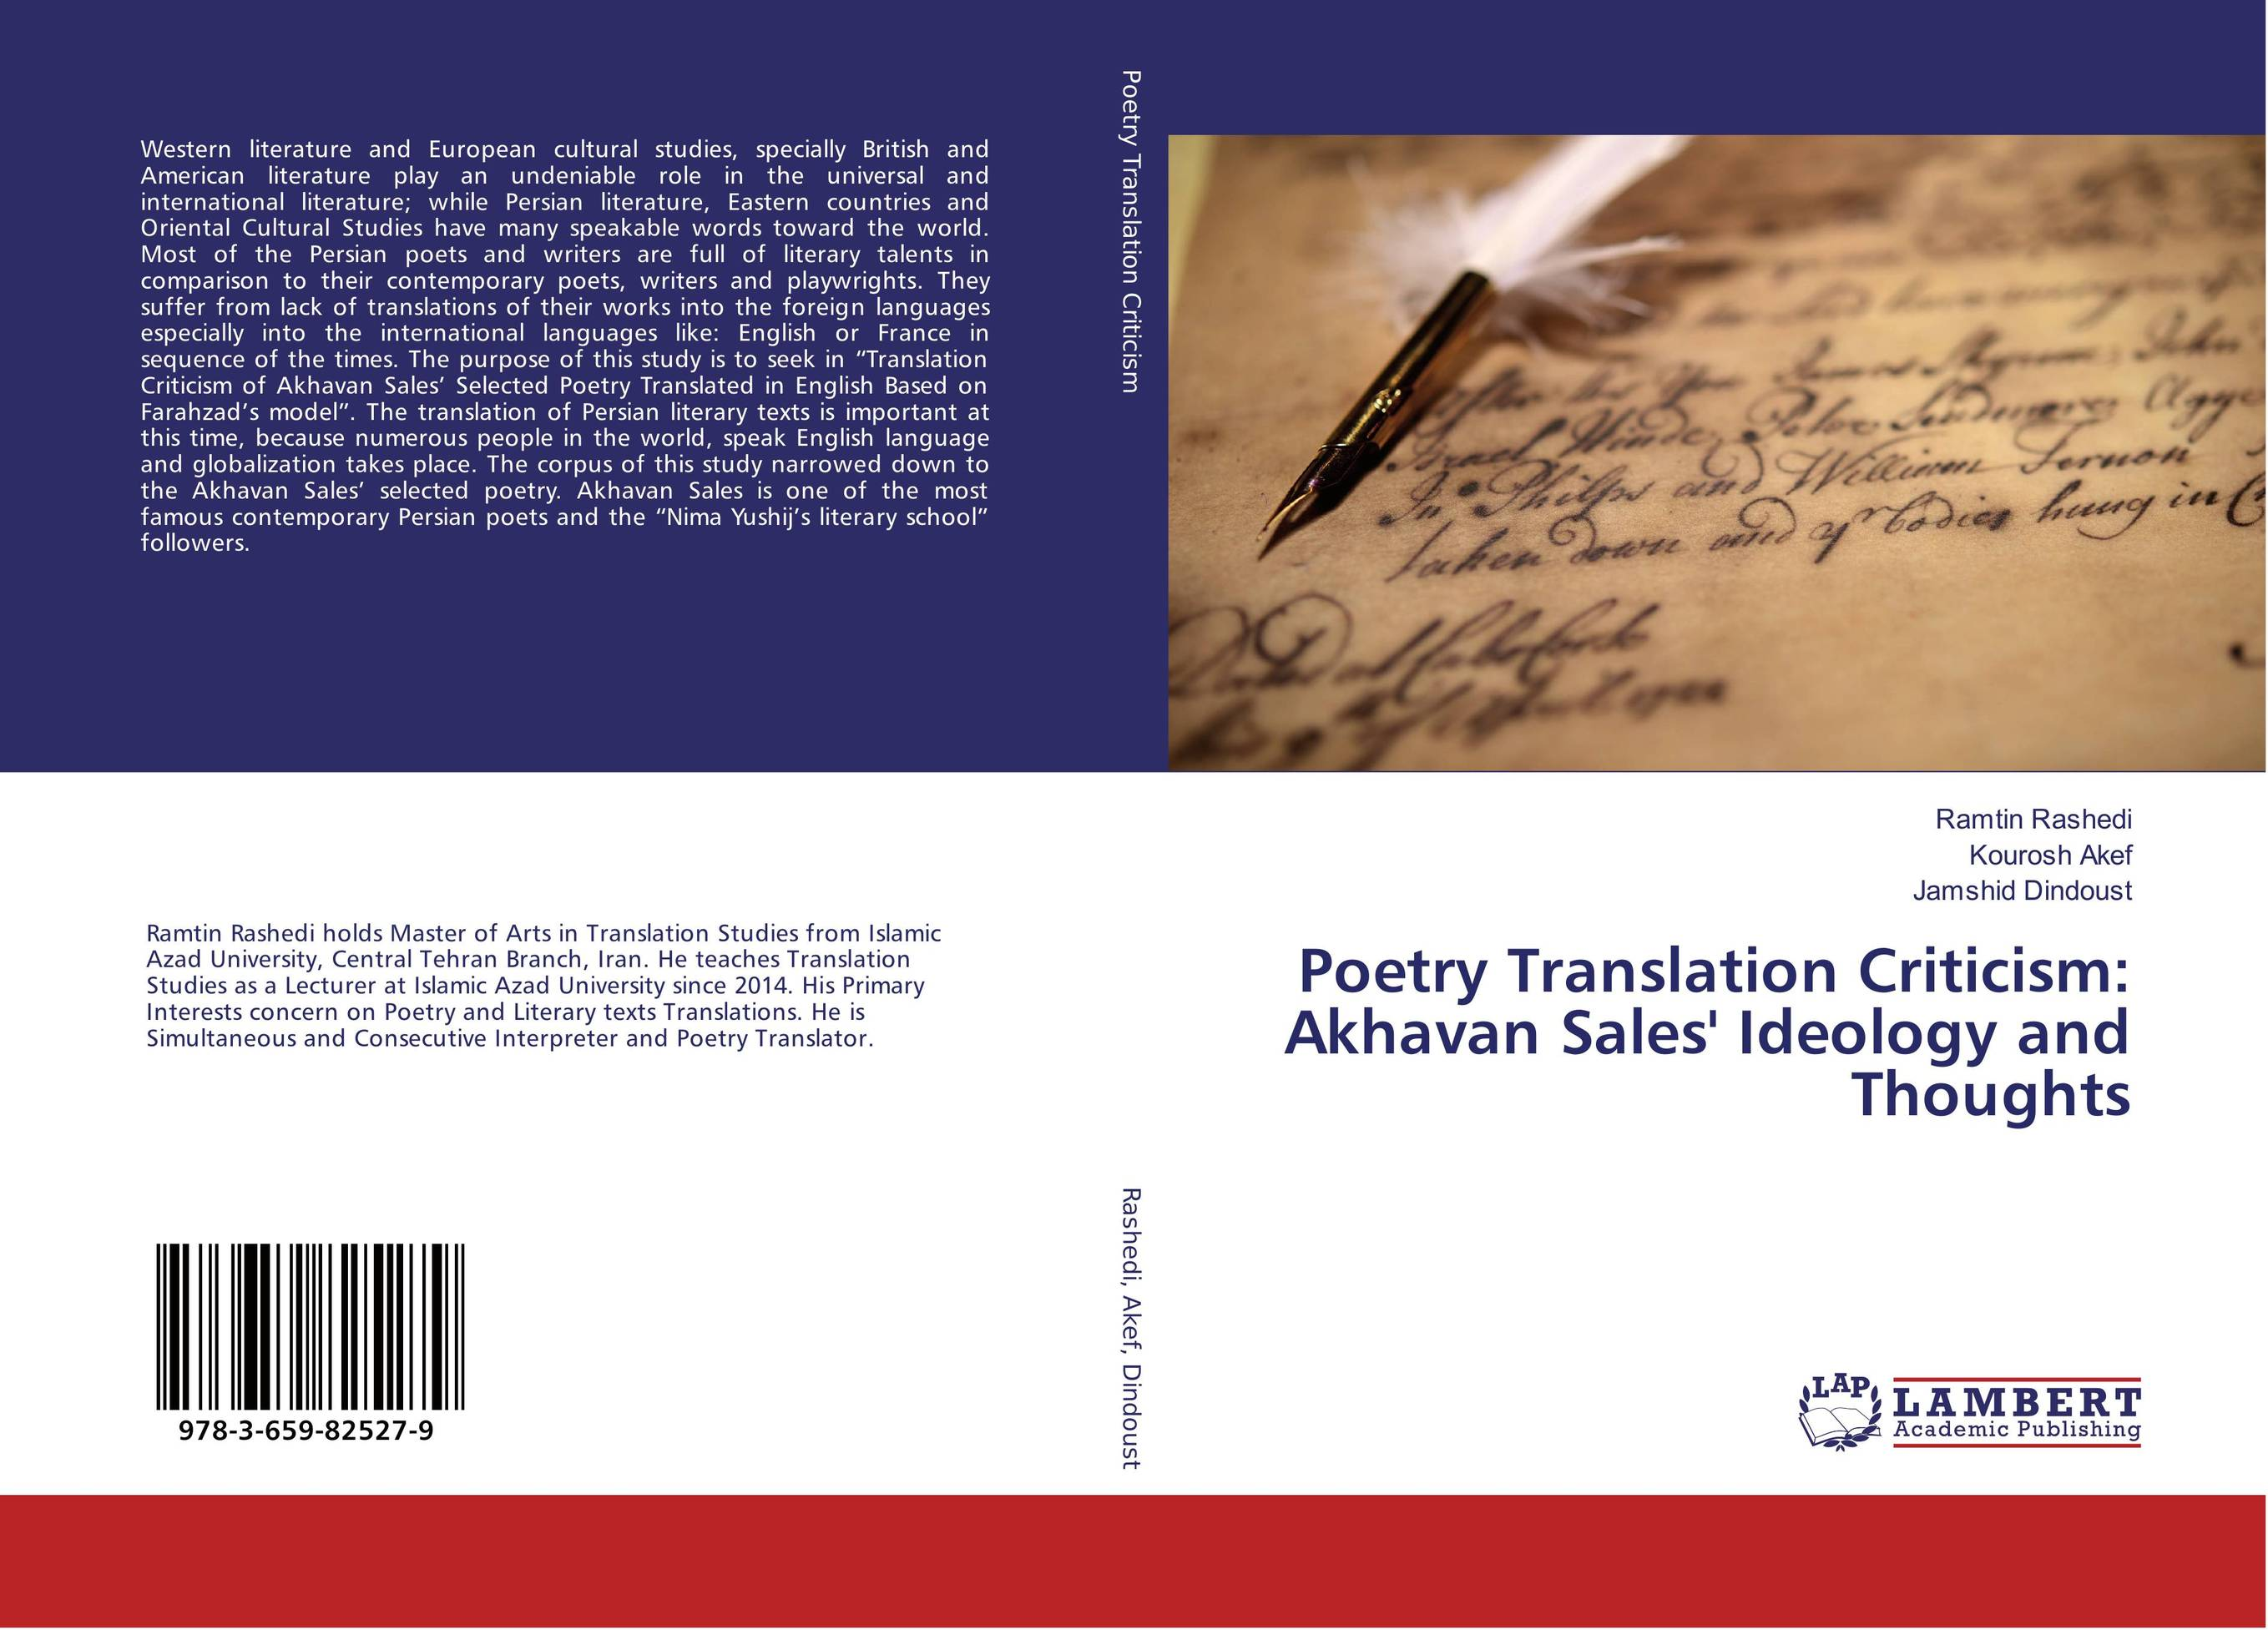 Poetry Translation Criticism: Akhavan Sales' Ideology and Thoughts the stylistic identity of english literary texts